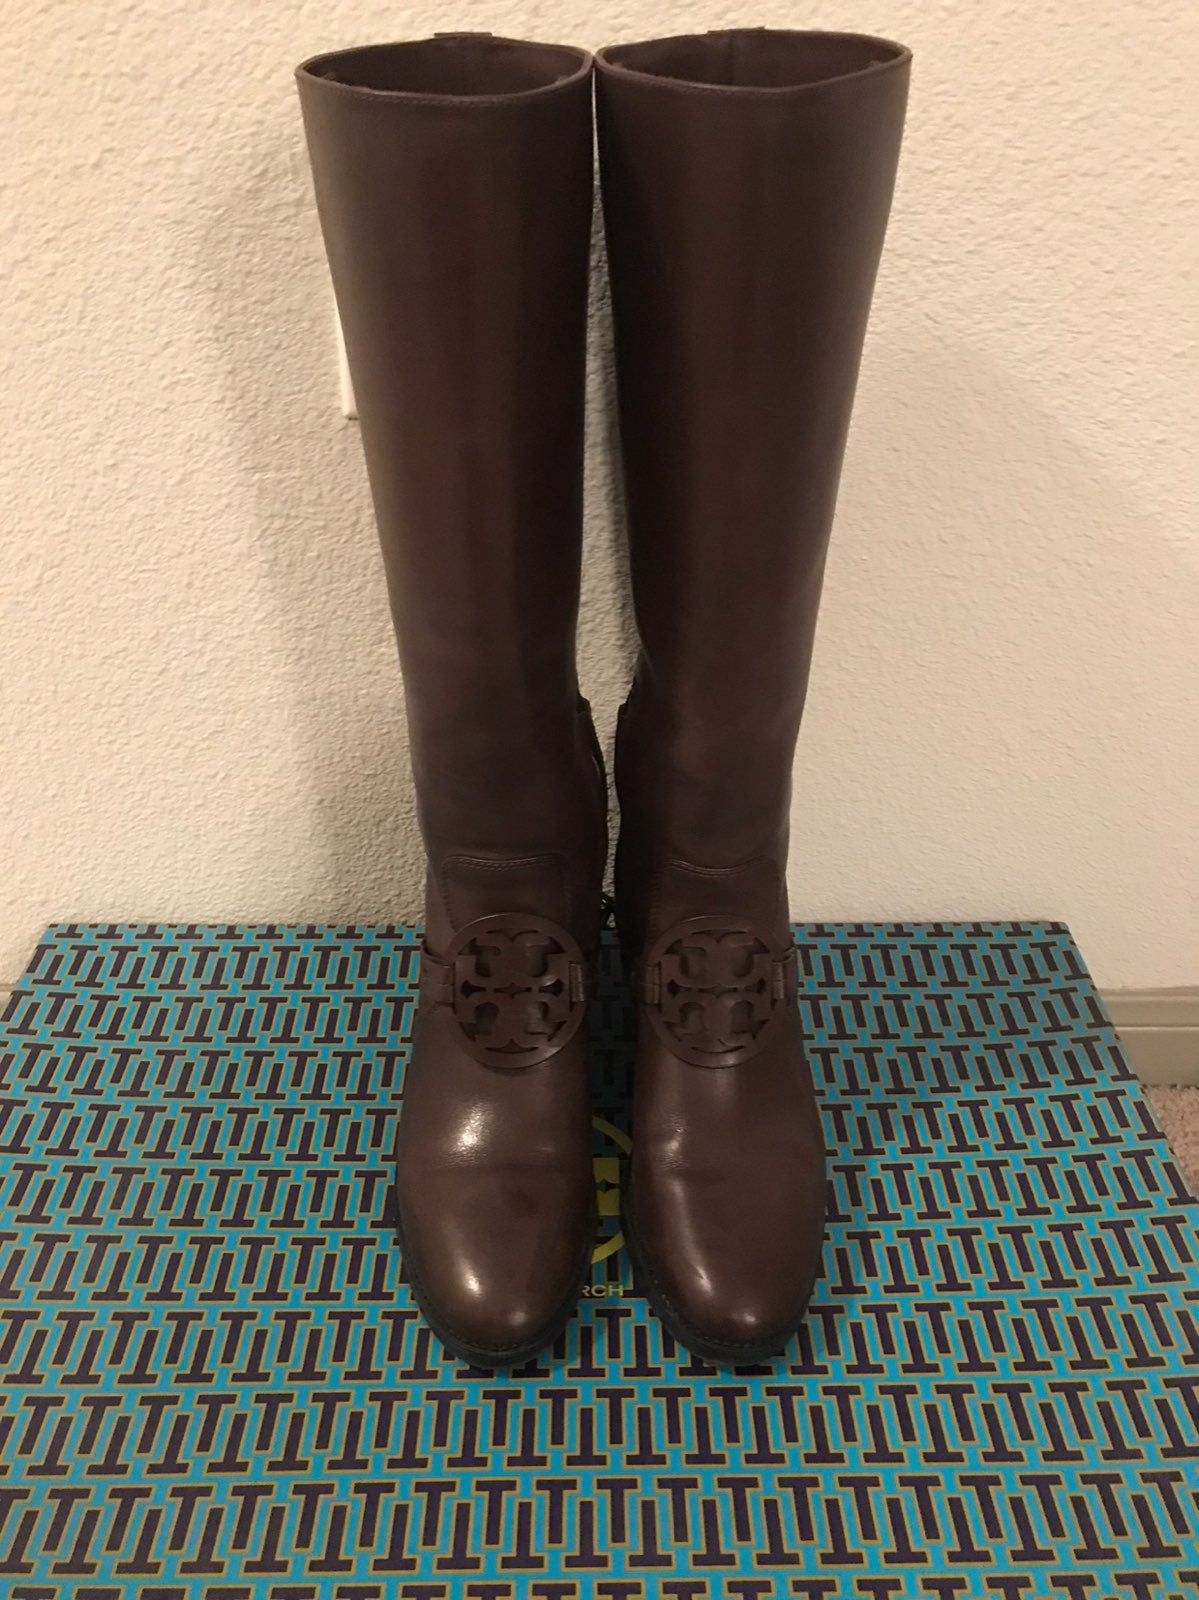 Pin on Tory Burch Boots